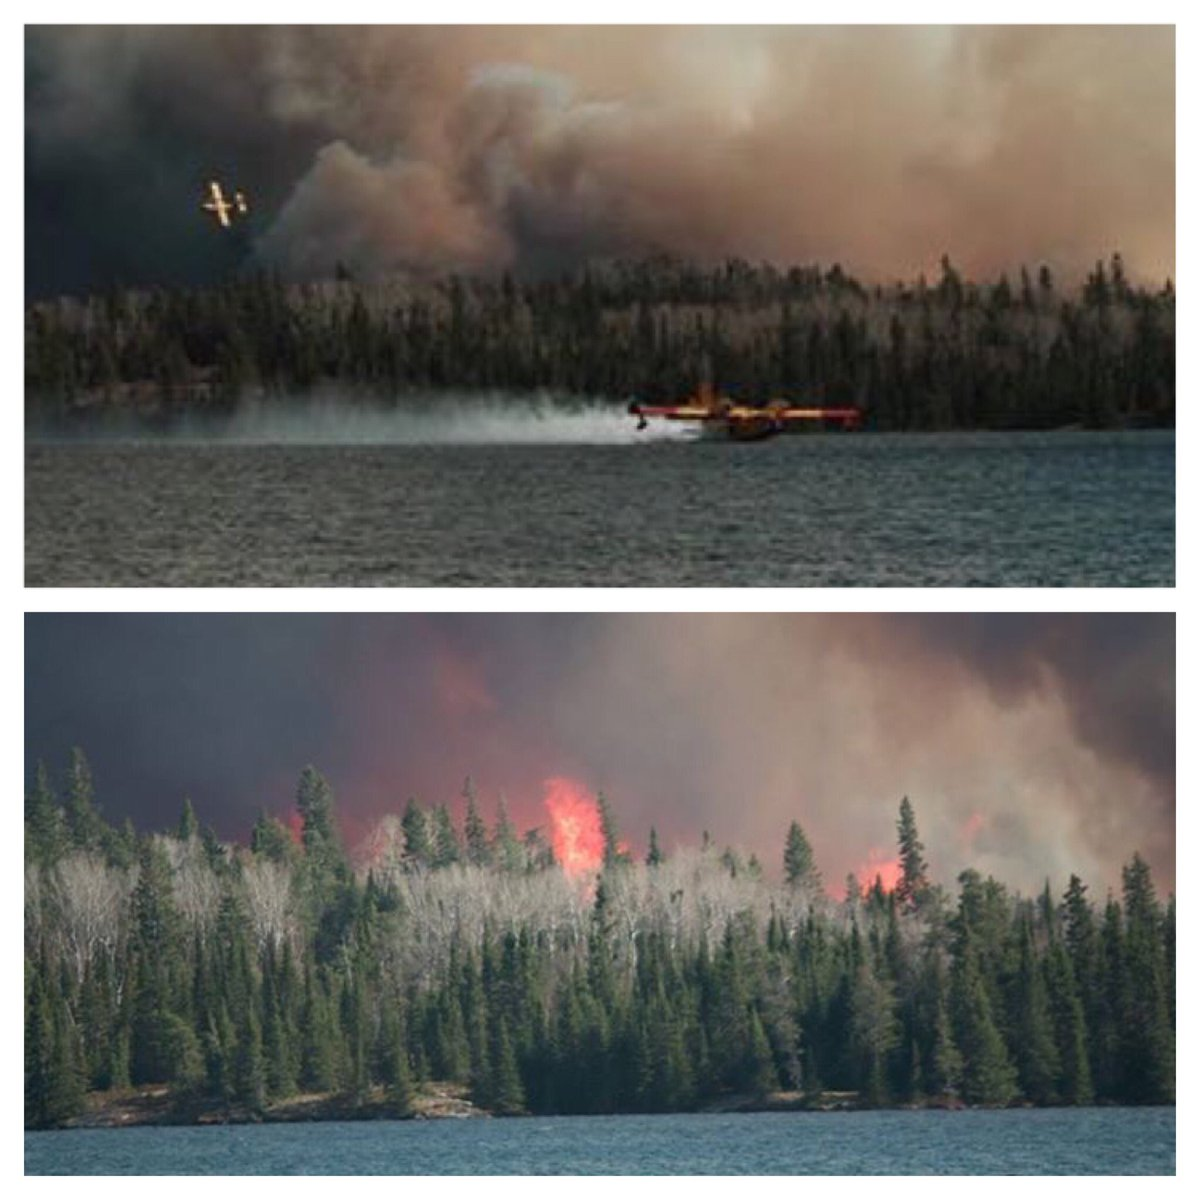 Recent images of forest fire east of Caddy Lake. 1K hectare fire is spreading & forces evac. of 50 cottages. #CTV https://t.co/w6gRyGVnhl